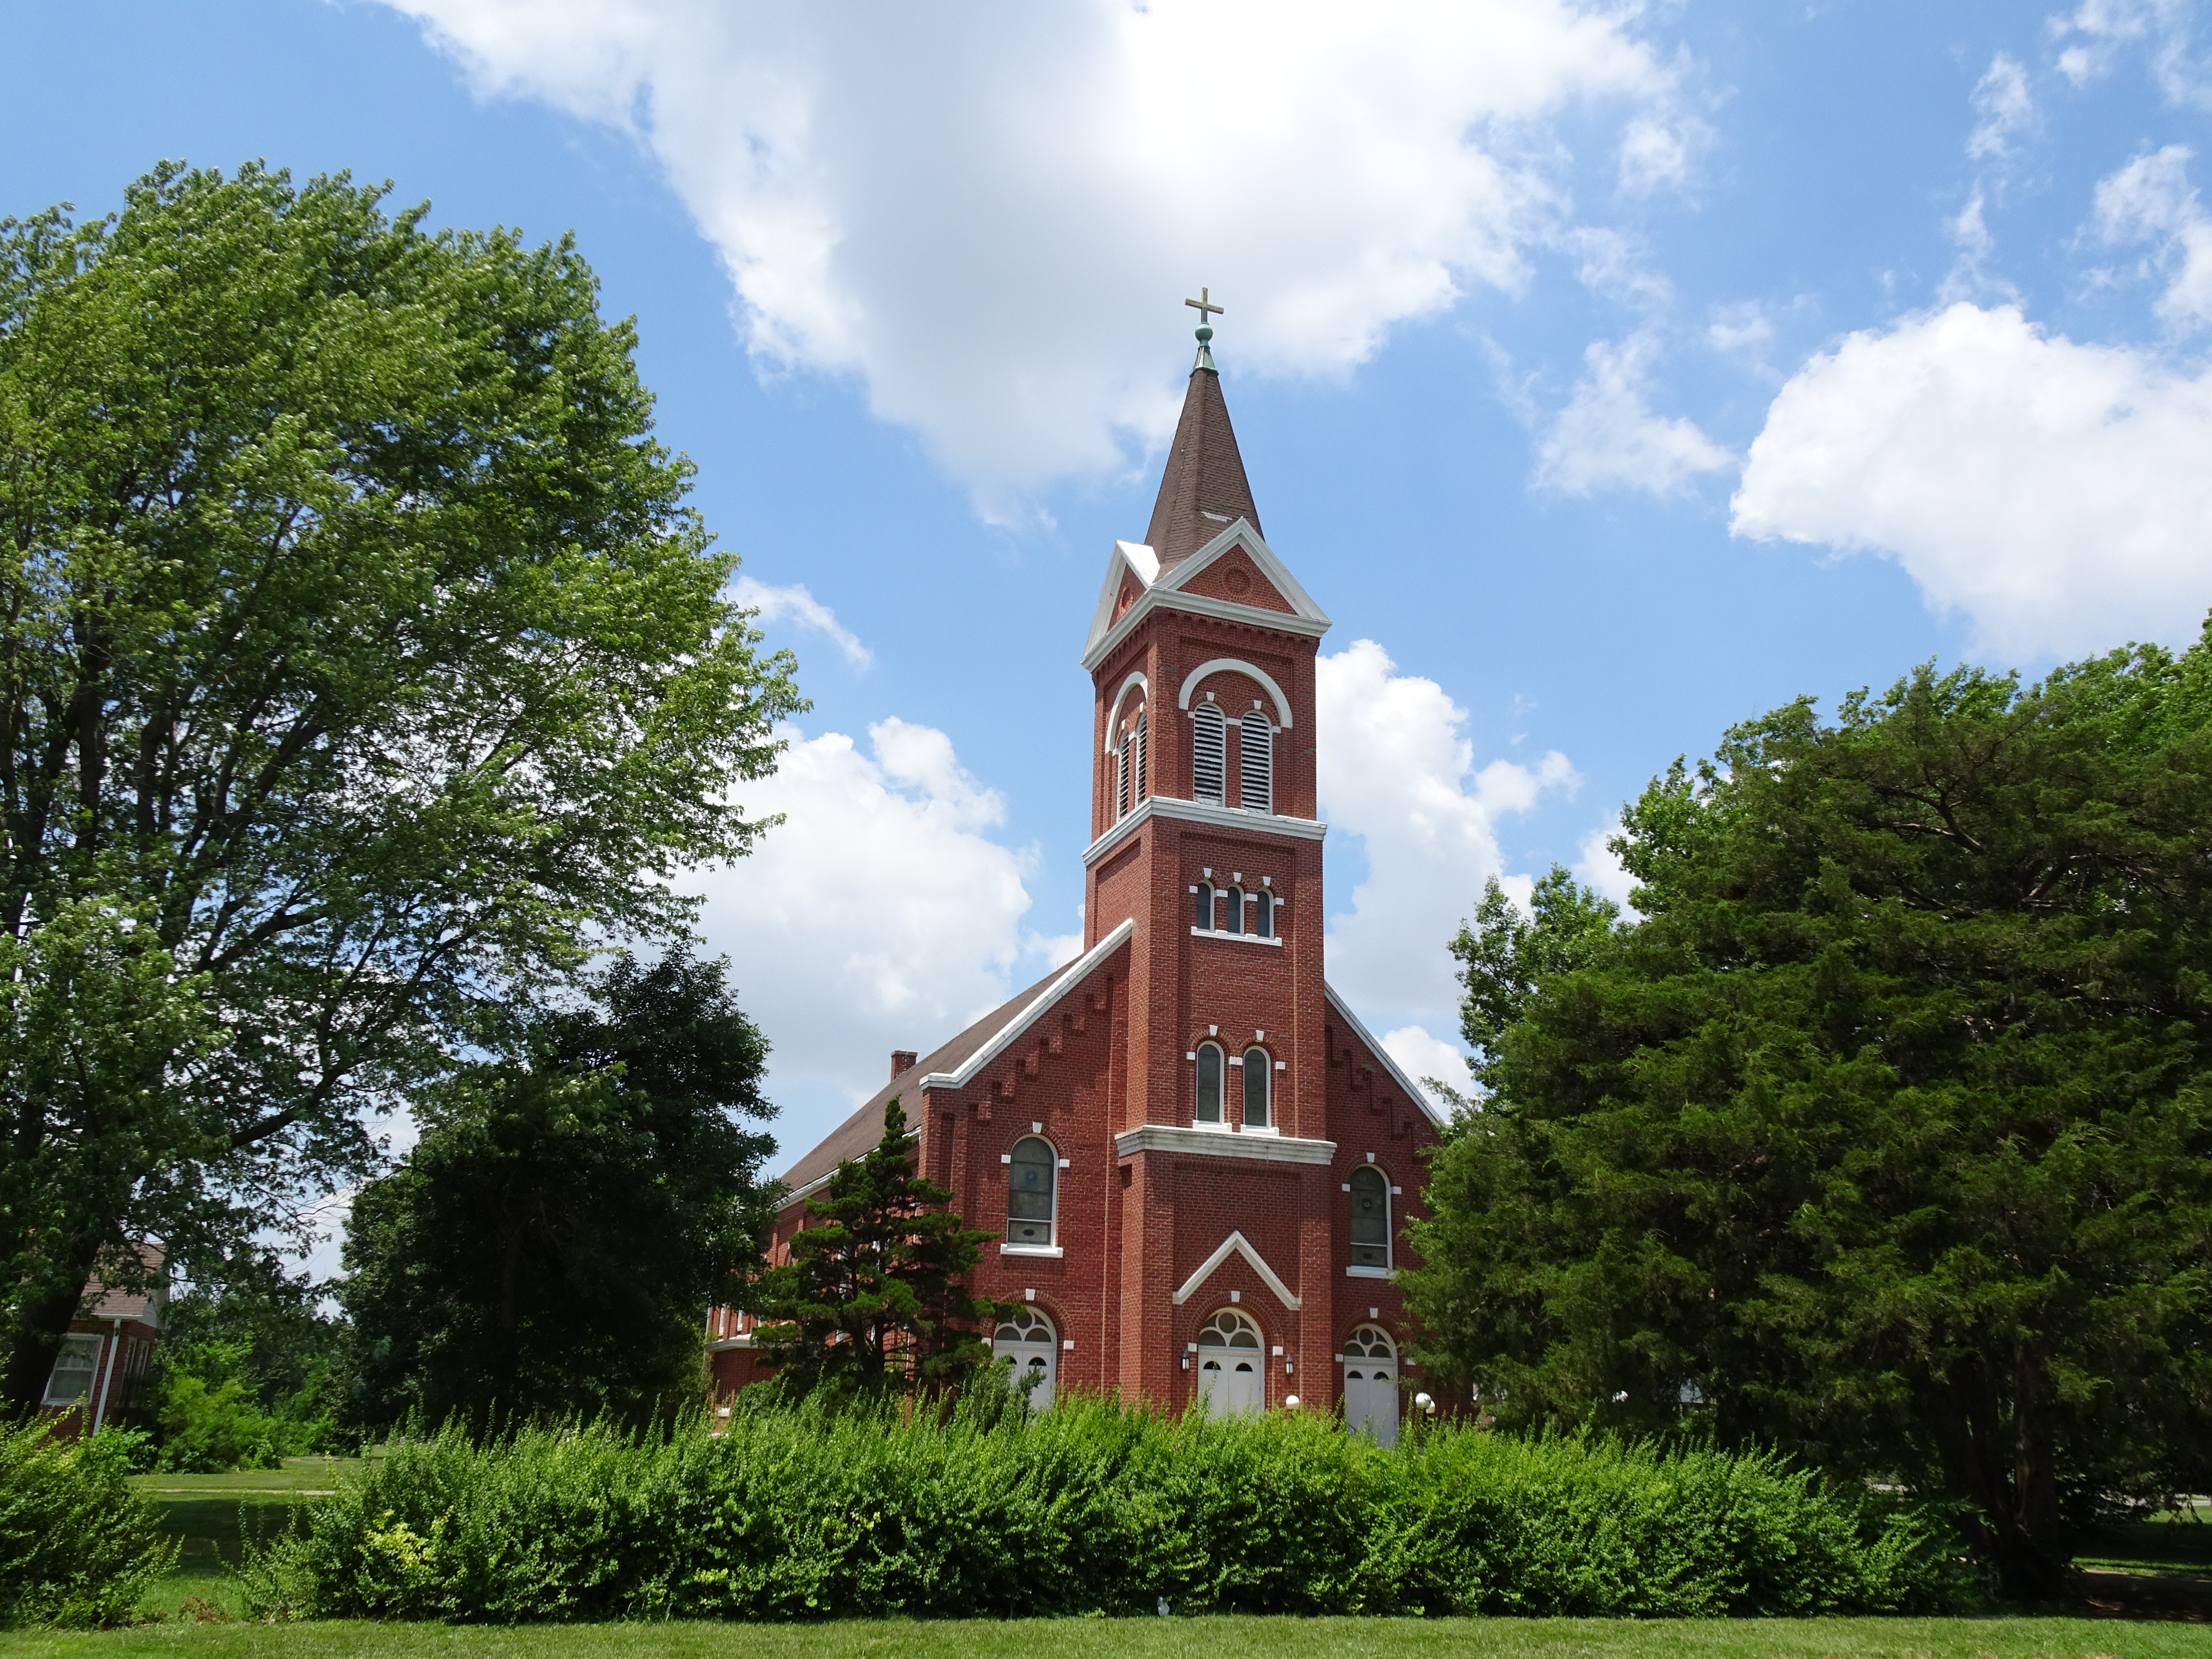 Kansas woodson county piqua - Located West Of Lindsborg Ks Is The Freemount Lutheran Church Built In 1927 To Replace The 1880 Church That Was Destroyed By A Fire Caused By Lightning